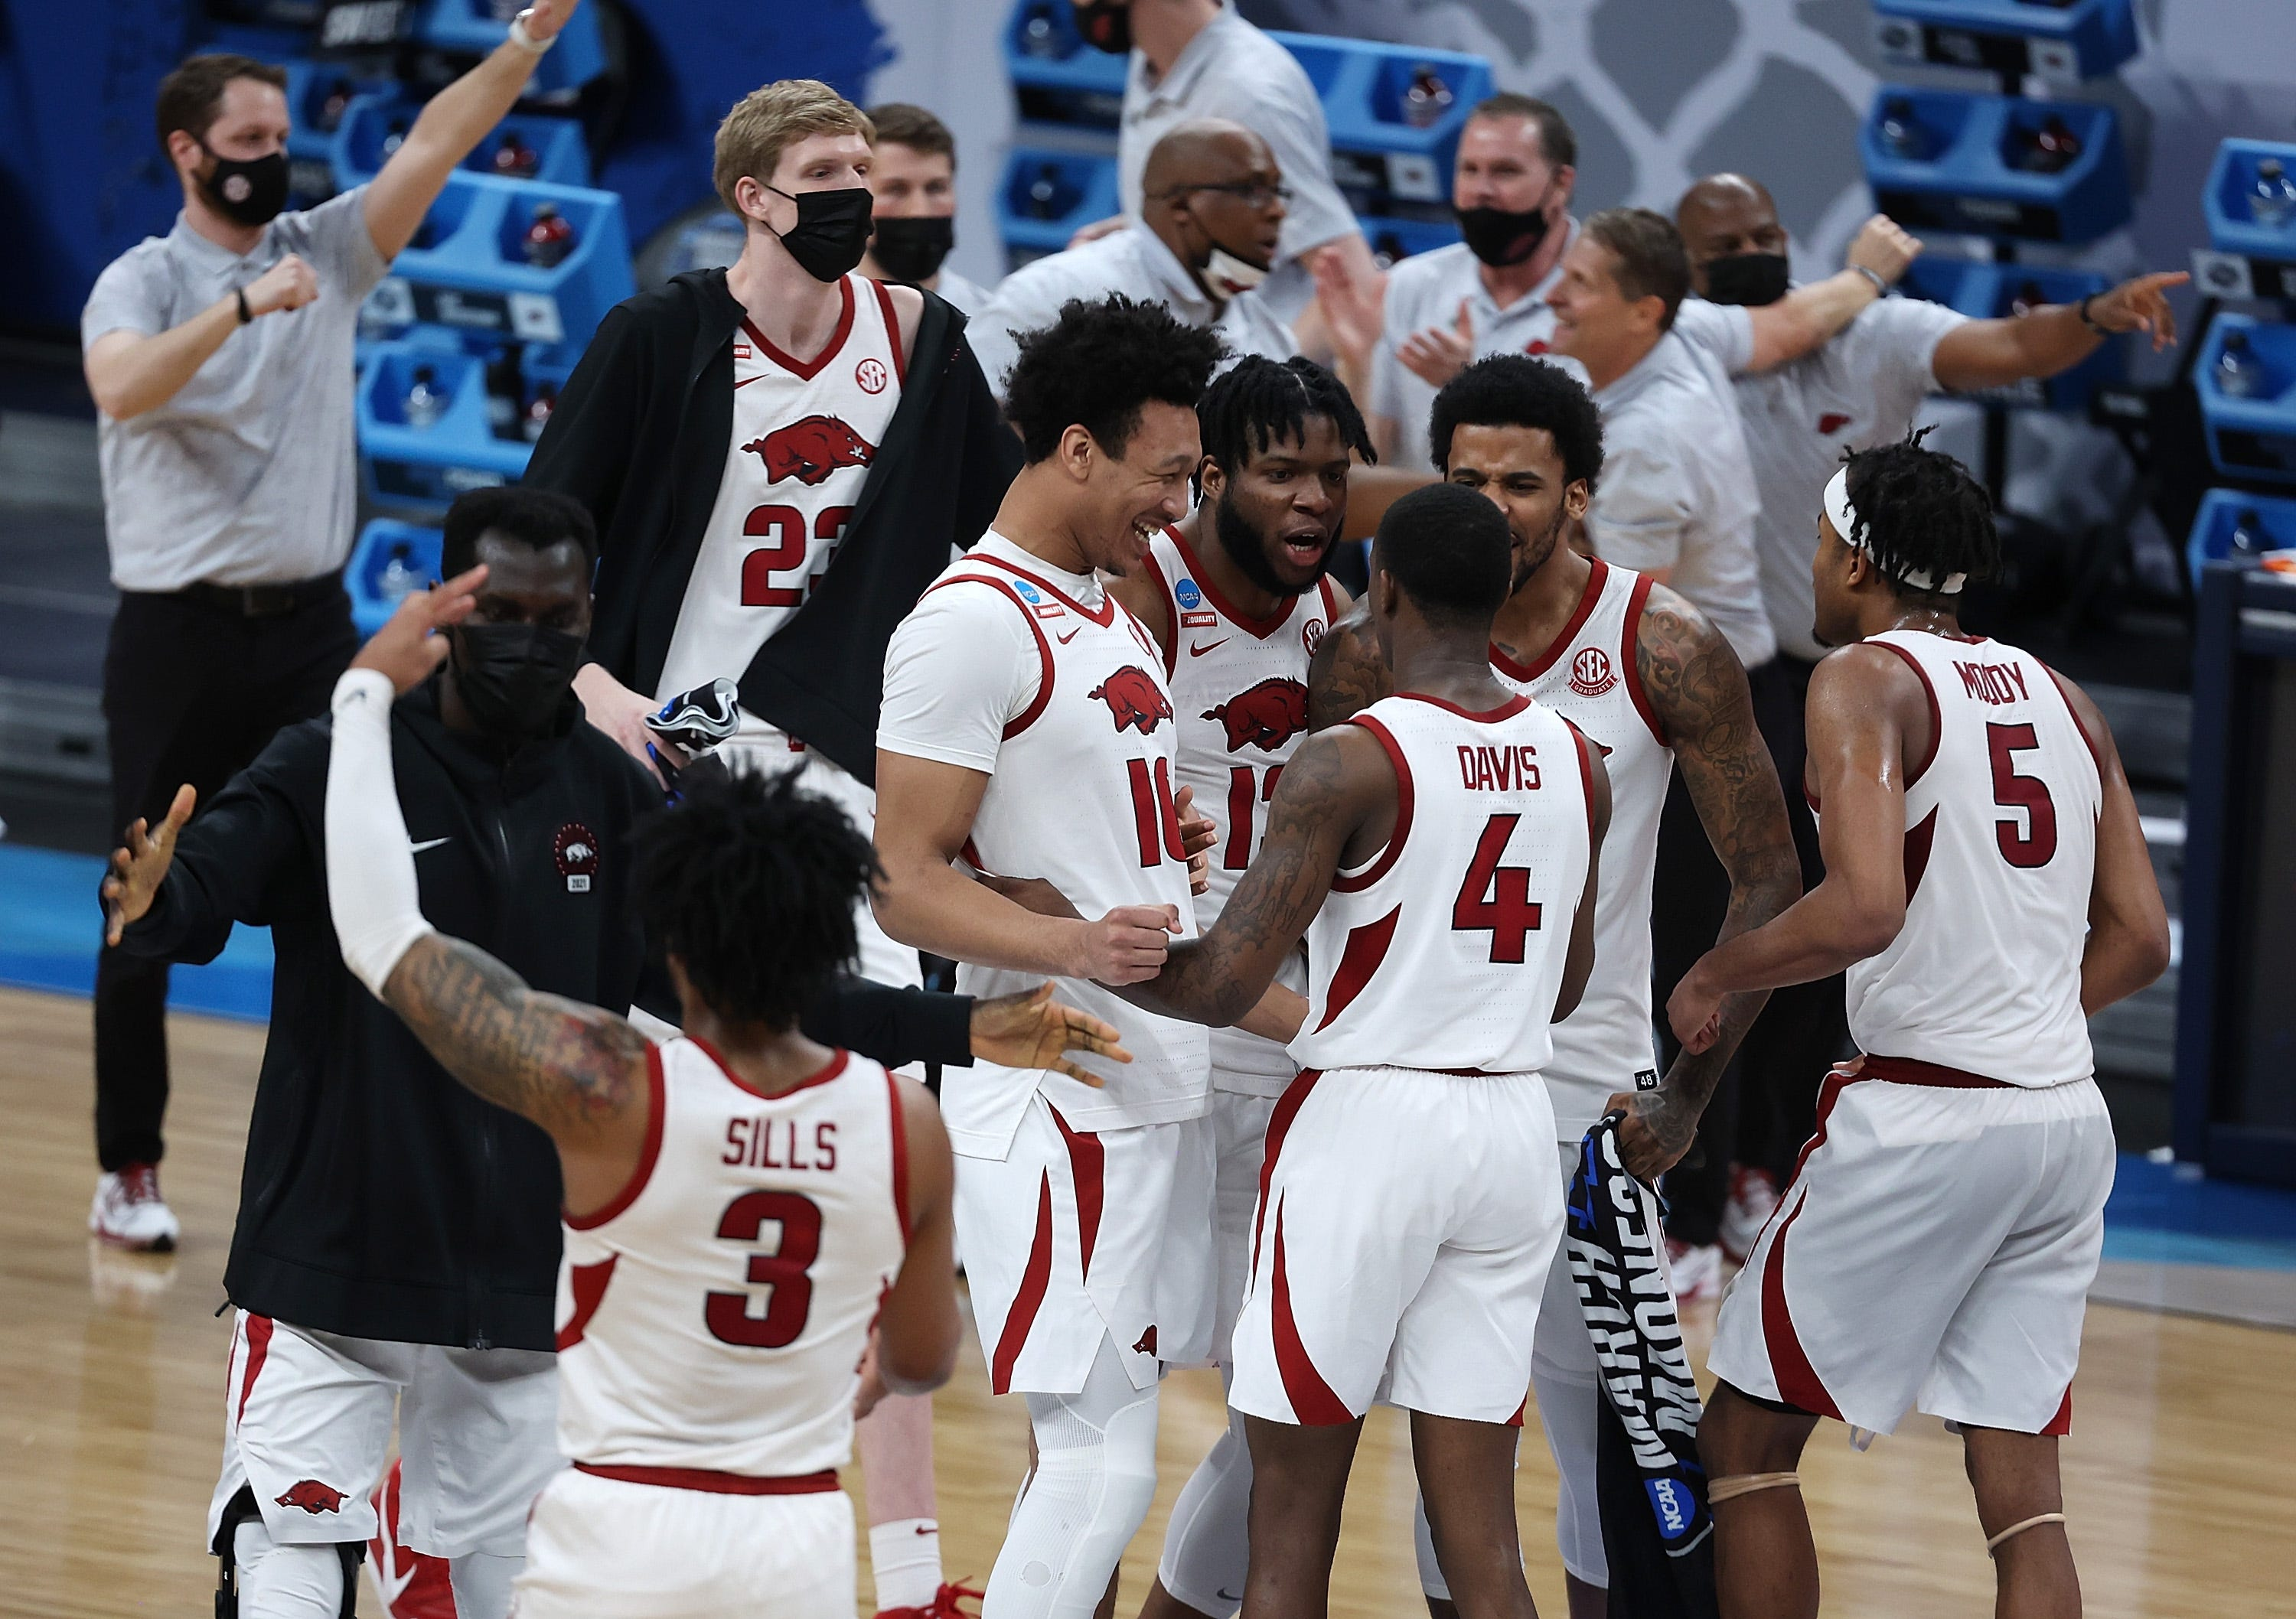 Arkansas storms back to evade historic upset bid from Oral Roberts, reach men s Elite Eight